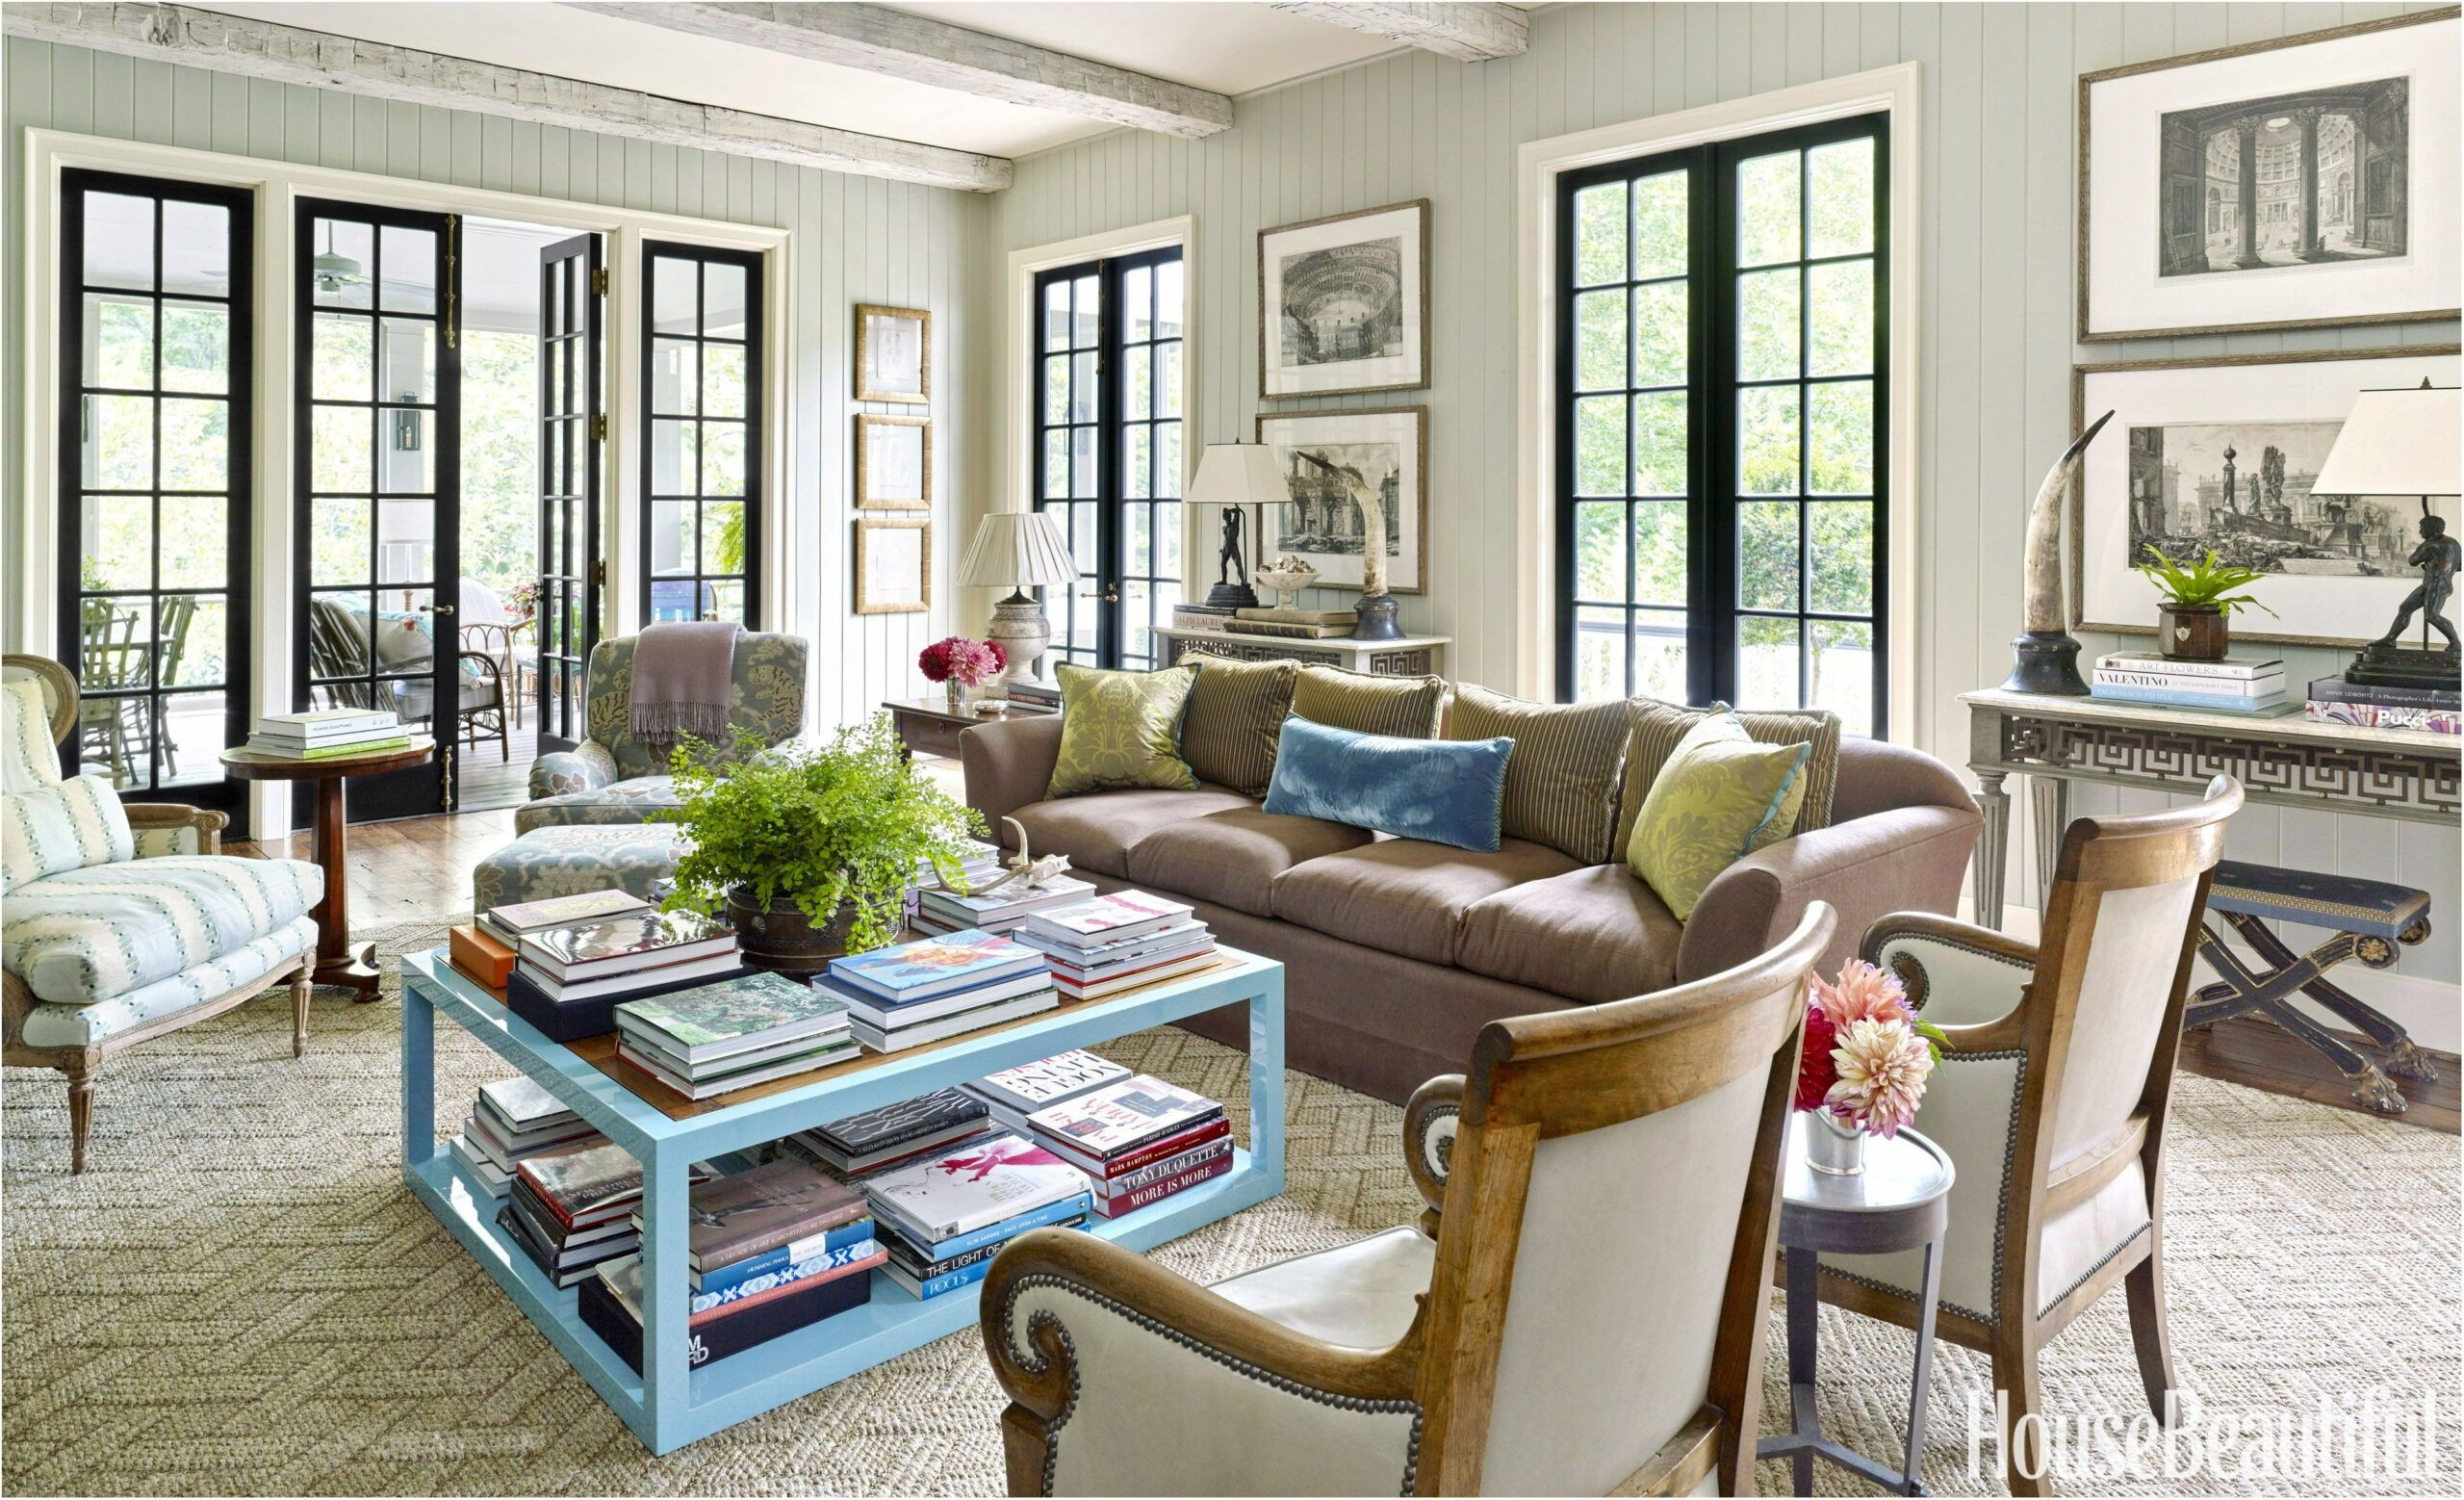 Sage Paint Color Living Room In 2020 Sage Green Paint Color Sage Green Paint Black Dining Room #sage #green #and #grey #living #room